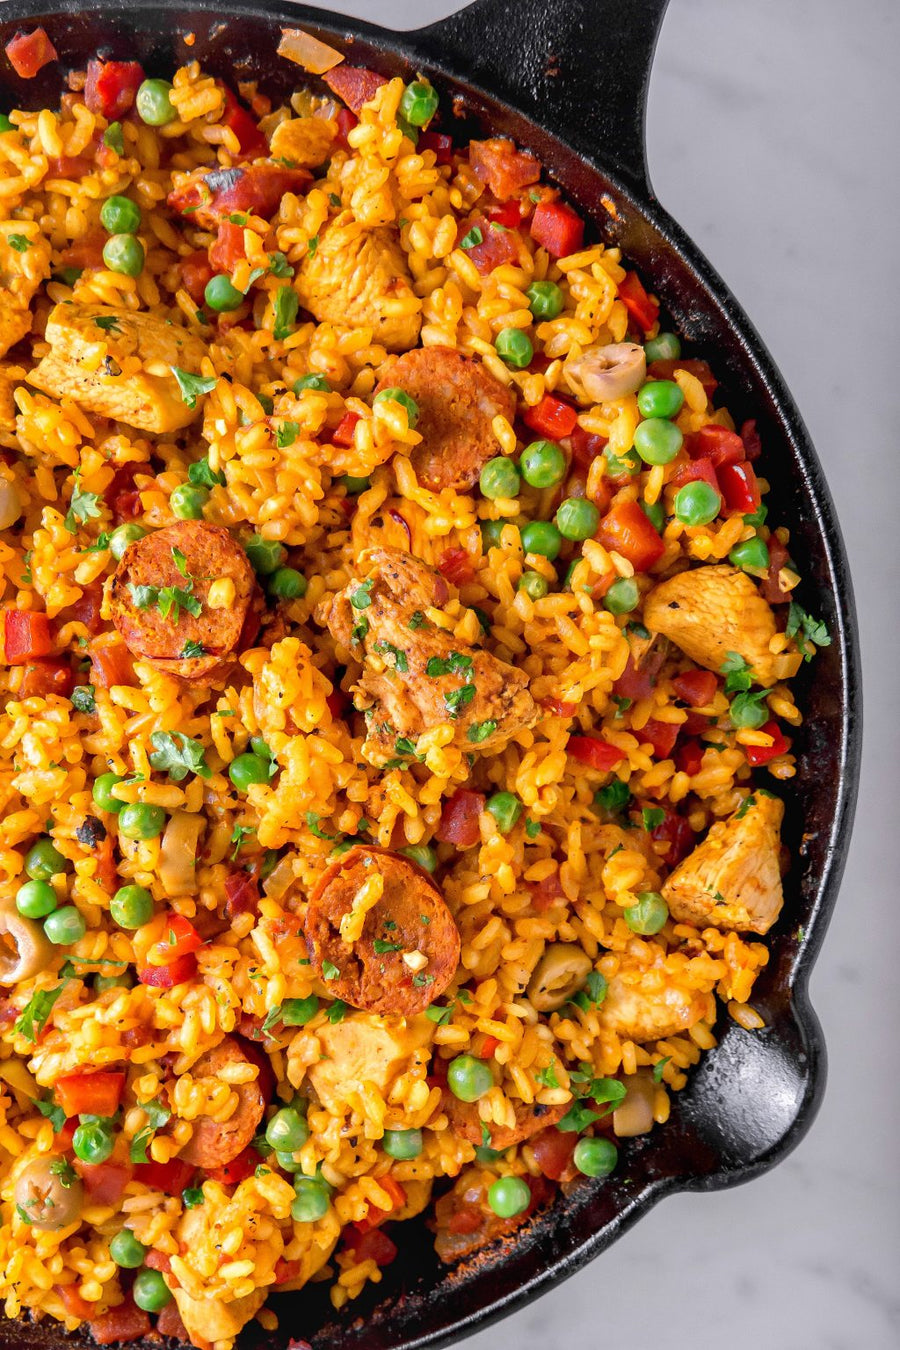 Flavours Of Spain - Paella & Pinchos | Date TBC 6.30pm | 2.5 hours